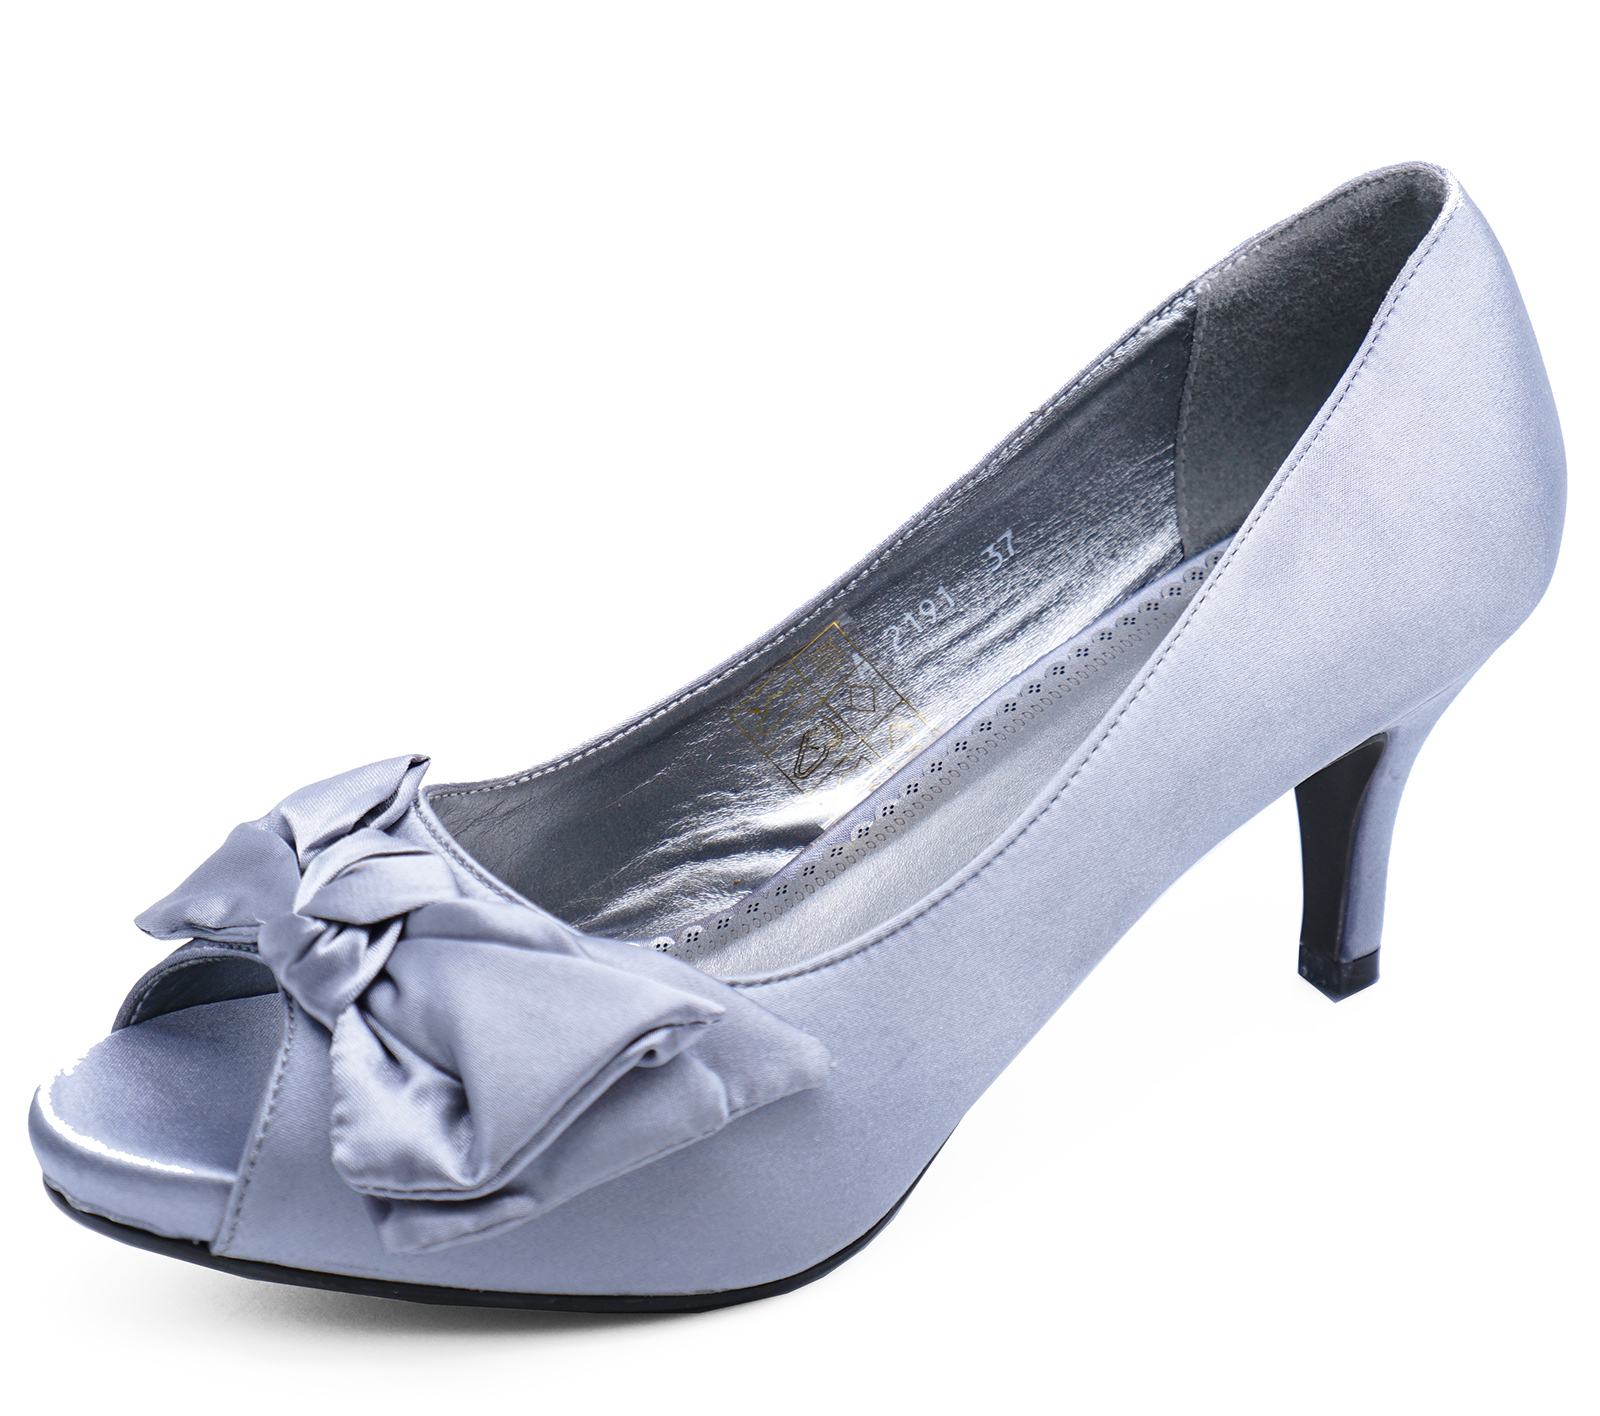 f1939d160 Sentinel WOMENS SILVER SATIN OPEN-TOE SLIP-ON MID HEEL COURT SMART WORK SHOES  SIZES. Sentinel Thumbnail 3